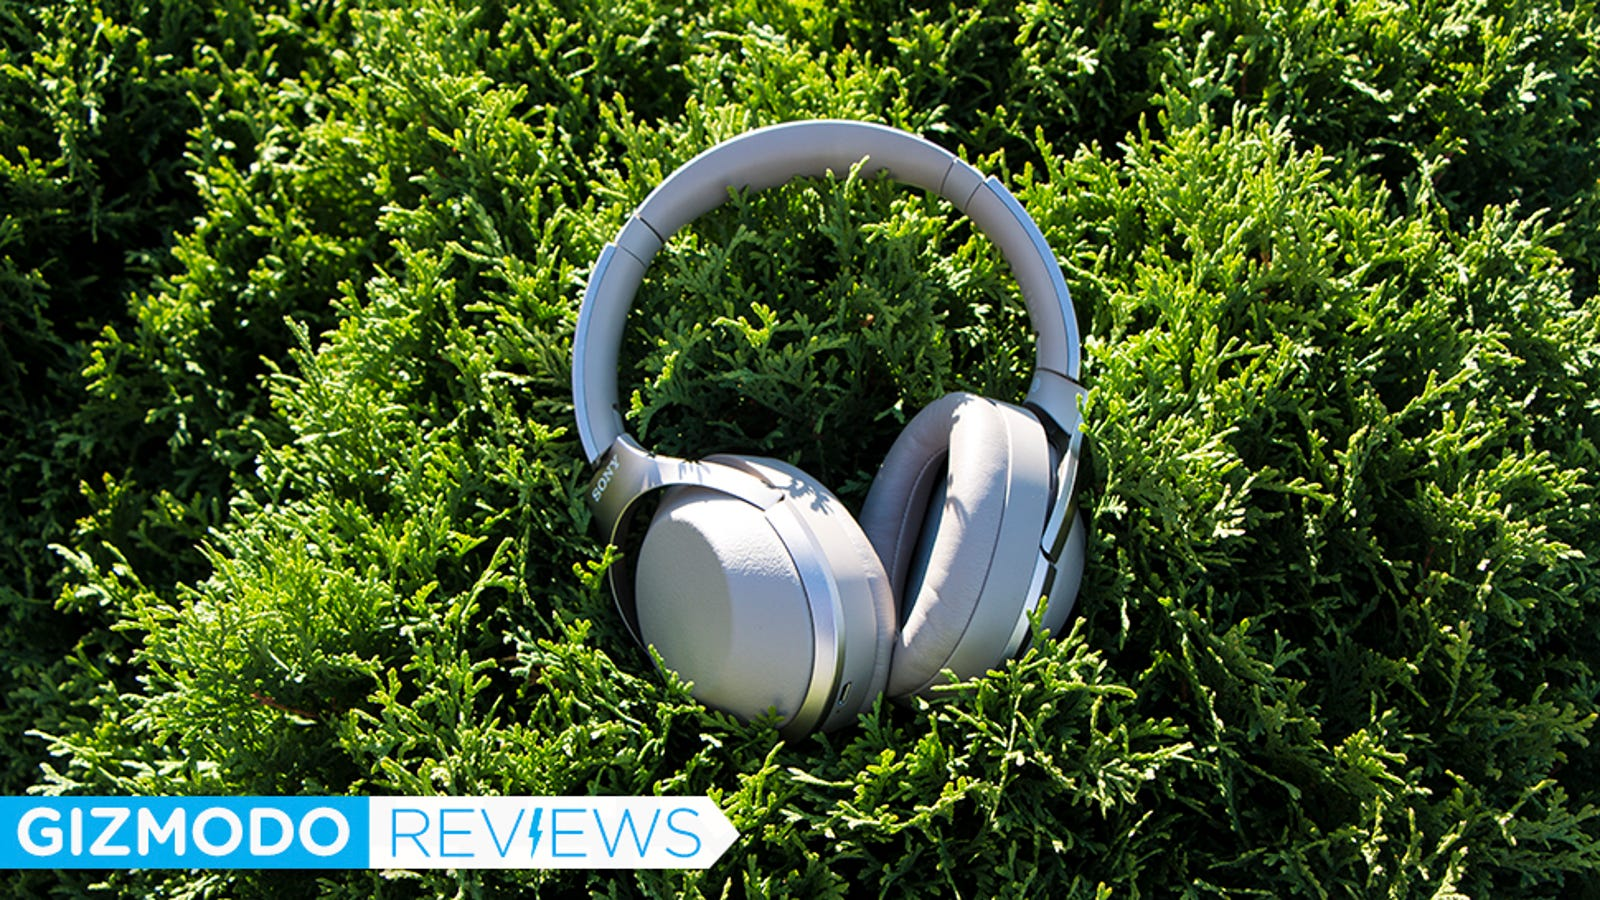 wireless headphones under 25 dollars - Sorry Bose, the Best Wireless Noise-Cancelling Headphones Are Now Made By Sony